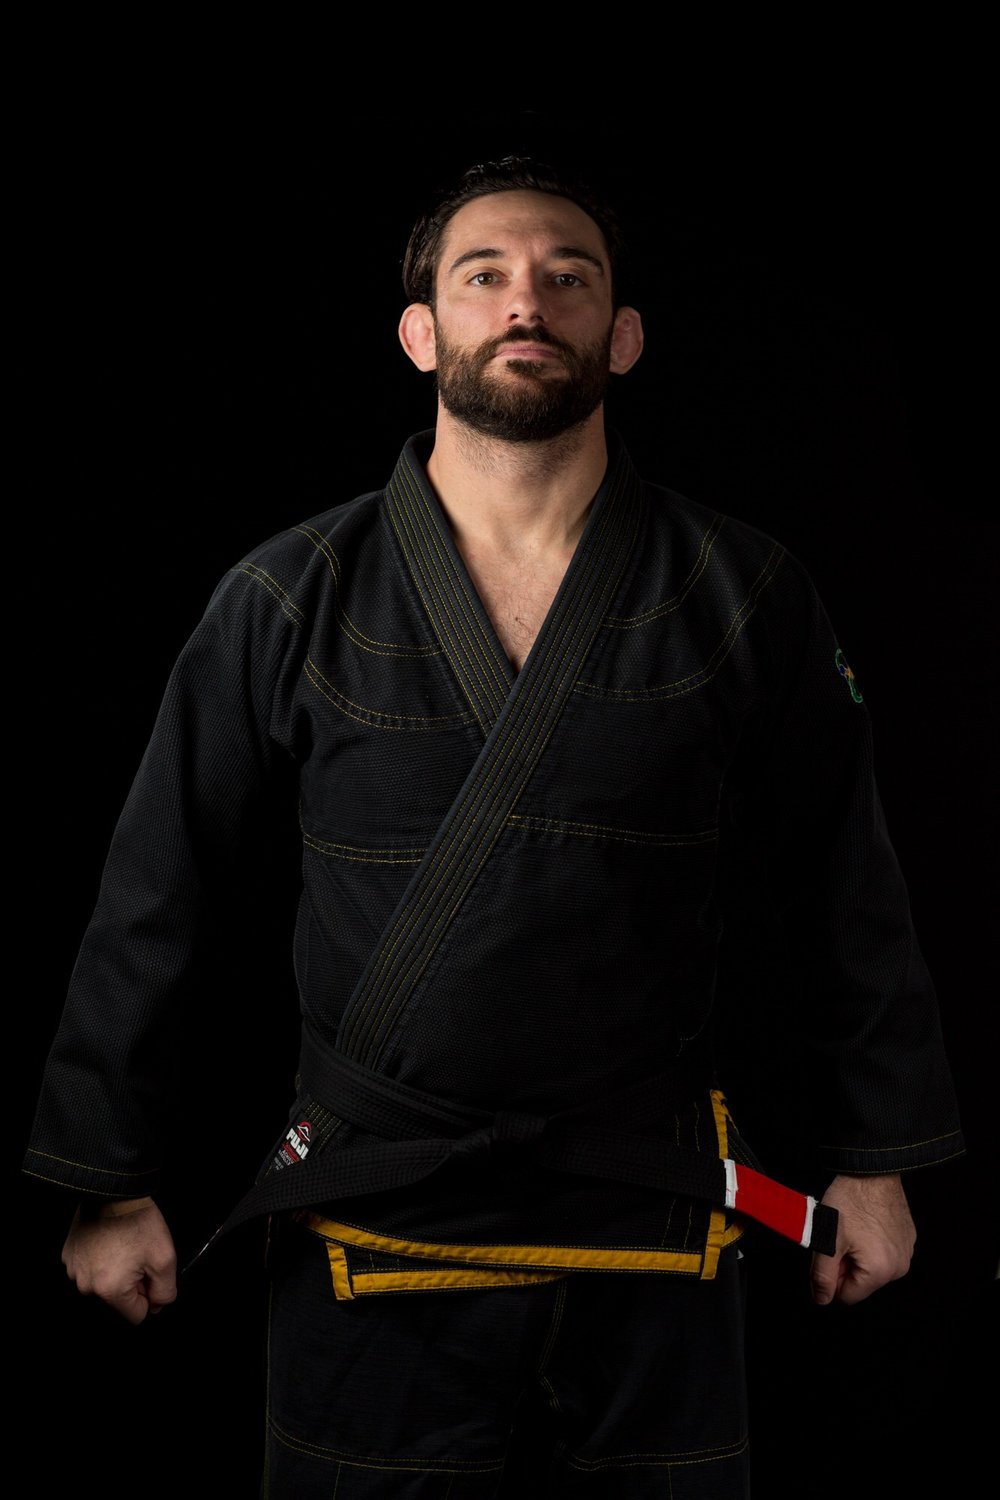 Marc Adami - Marc started training in 2007 under Renzo Gracie black belt Gene Dunn, white-purple; trained under Marcelo Garcia purple-brown; received his black belt under Fabio Clemente & Leo Vieira and now trains under Fabio Clemente with team Checkmat NYC.Titles:- Ranked number 1 master brown belt in 2017-Pan Am champion-3x Pan Am No Gi champion-Pan Am bronze medalist absolute-4 x Asian Open champion -2x weight 2x absolute-European No Gi champion-European bronze medalist- 3x New York Open champion, 2x silver medalist,bronze medalist-BJJ Pro champion-Boston Open champion-NAGA Expert champion- Masters worlds silver medalist-Rome Open silver medalist-Toronto Open bronze medalist